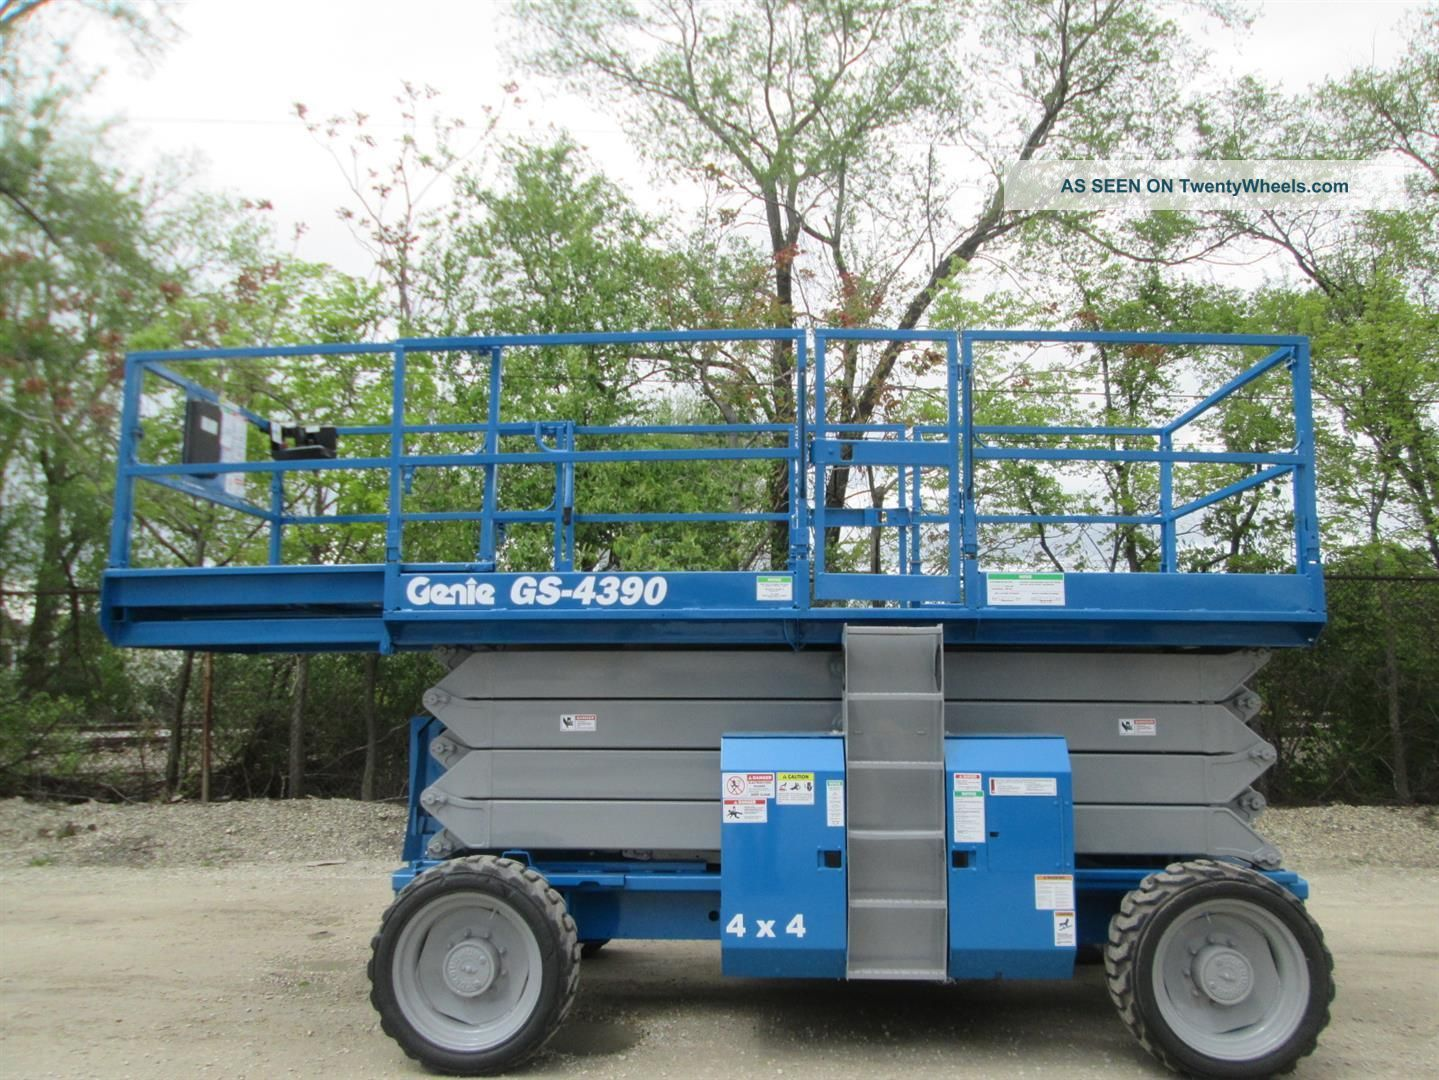 2006 Genie 4390rt 4wd Rough Terrain Scissor Lift Manlift Boom Aerial Lift Scissor & Boom Lifts photo